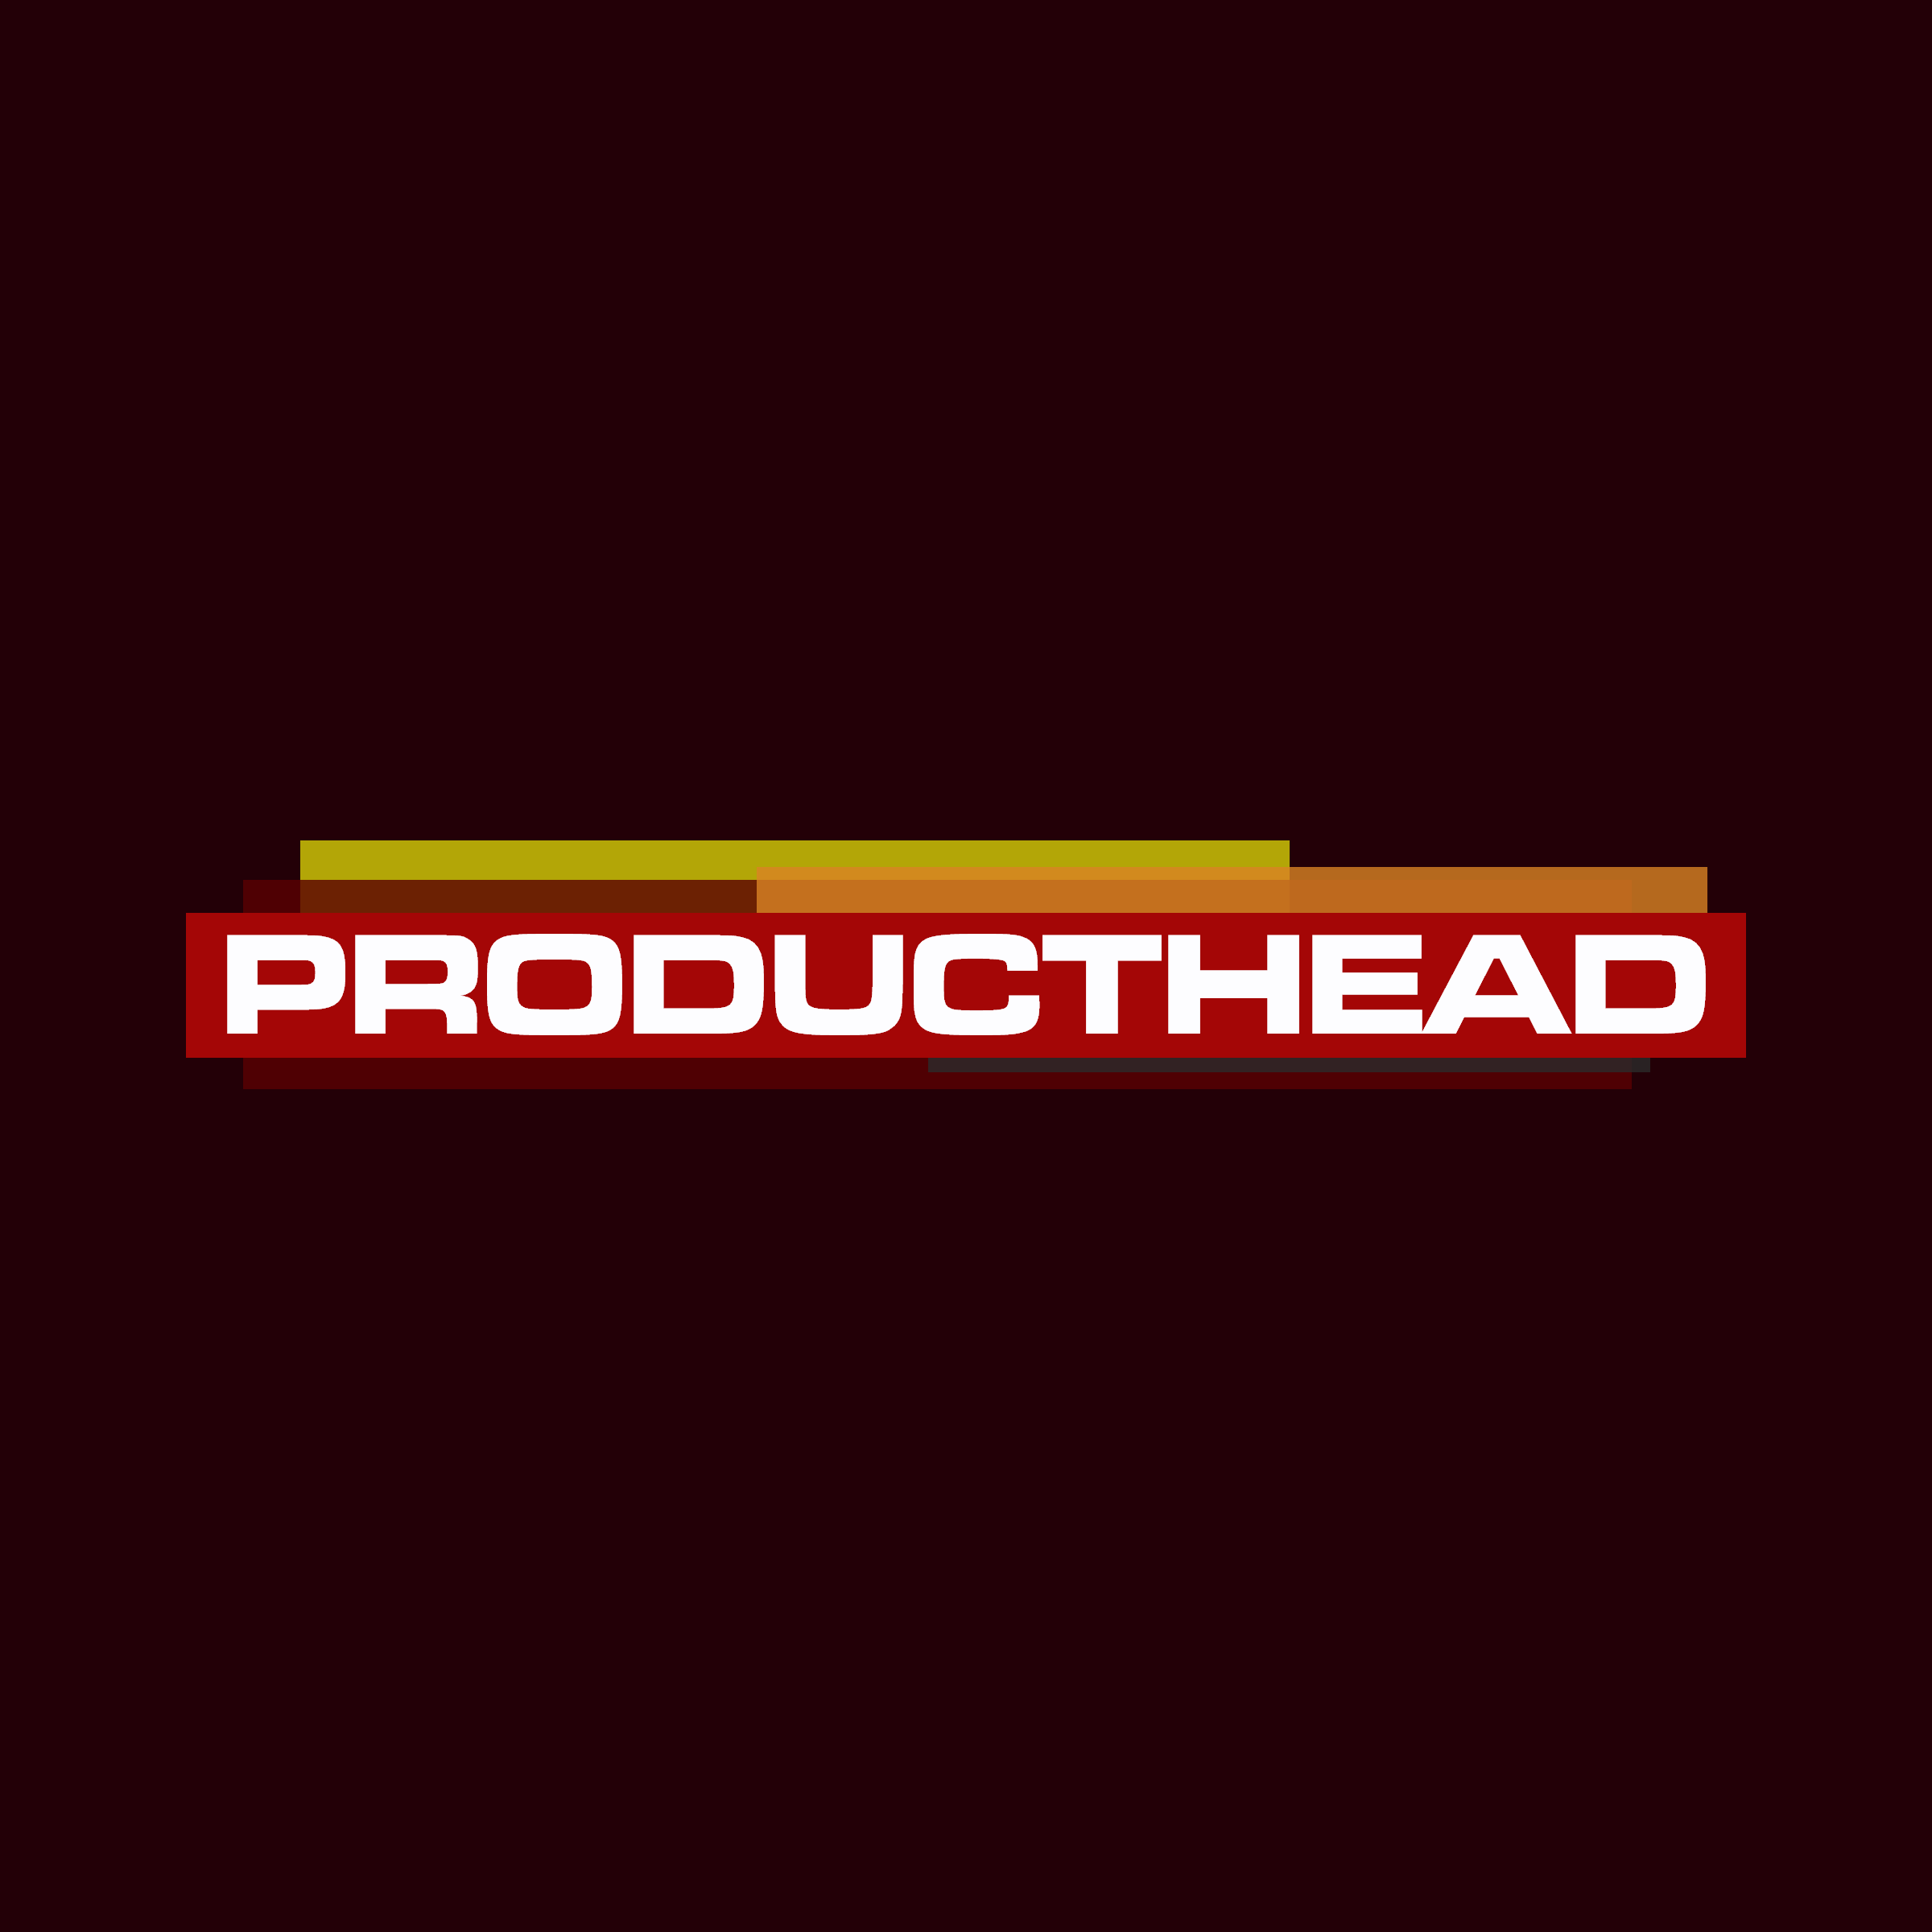 PRODUCTHEAD: A single point of failure